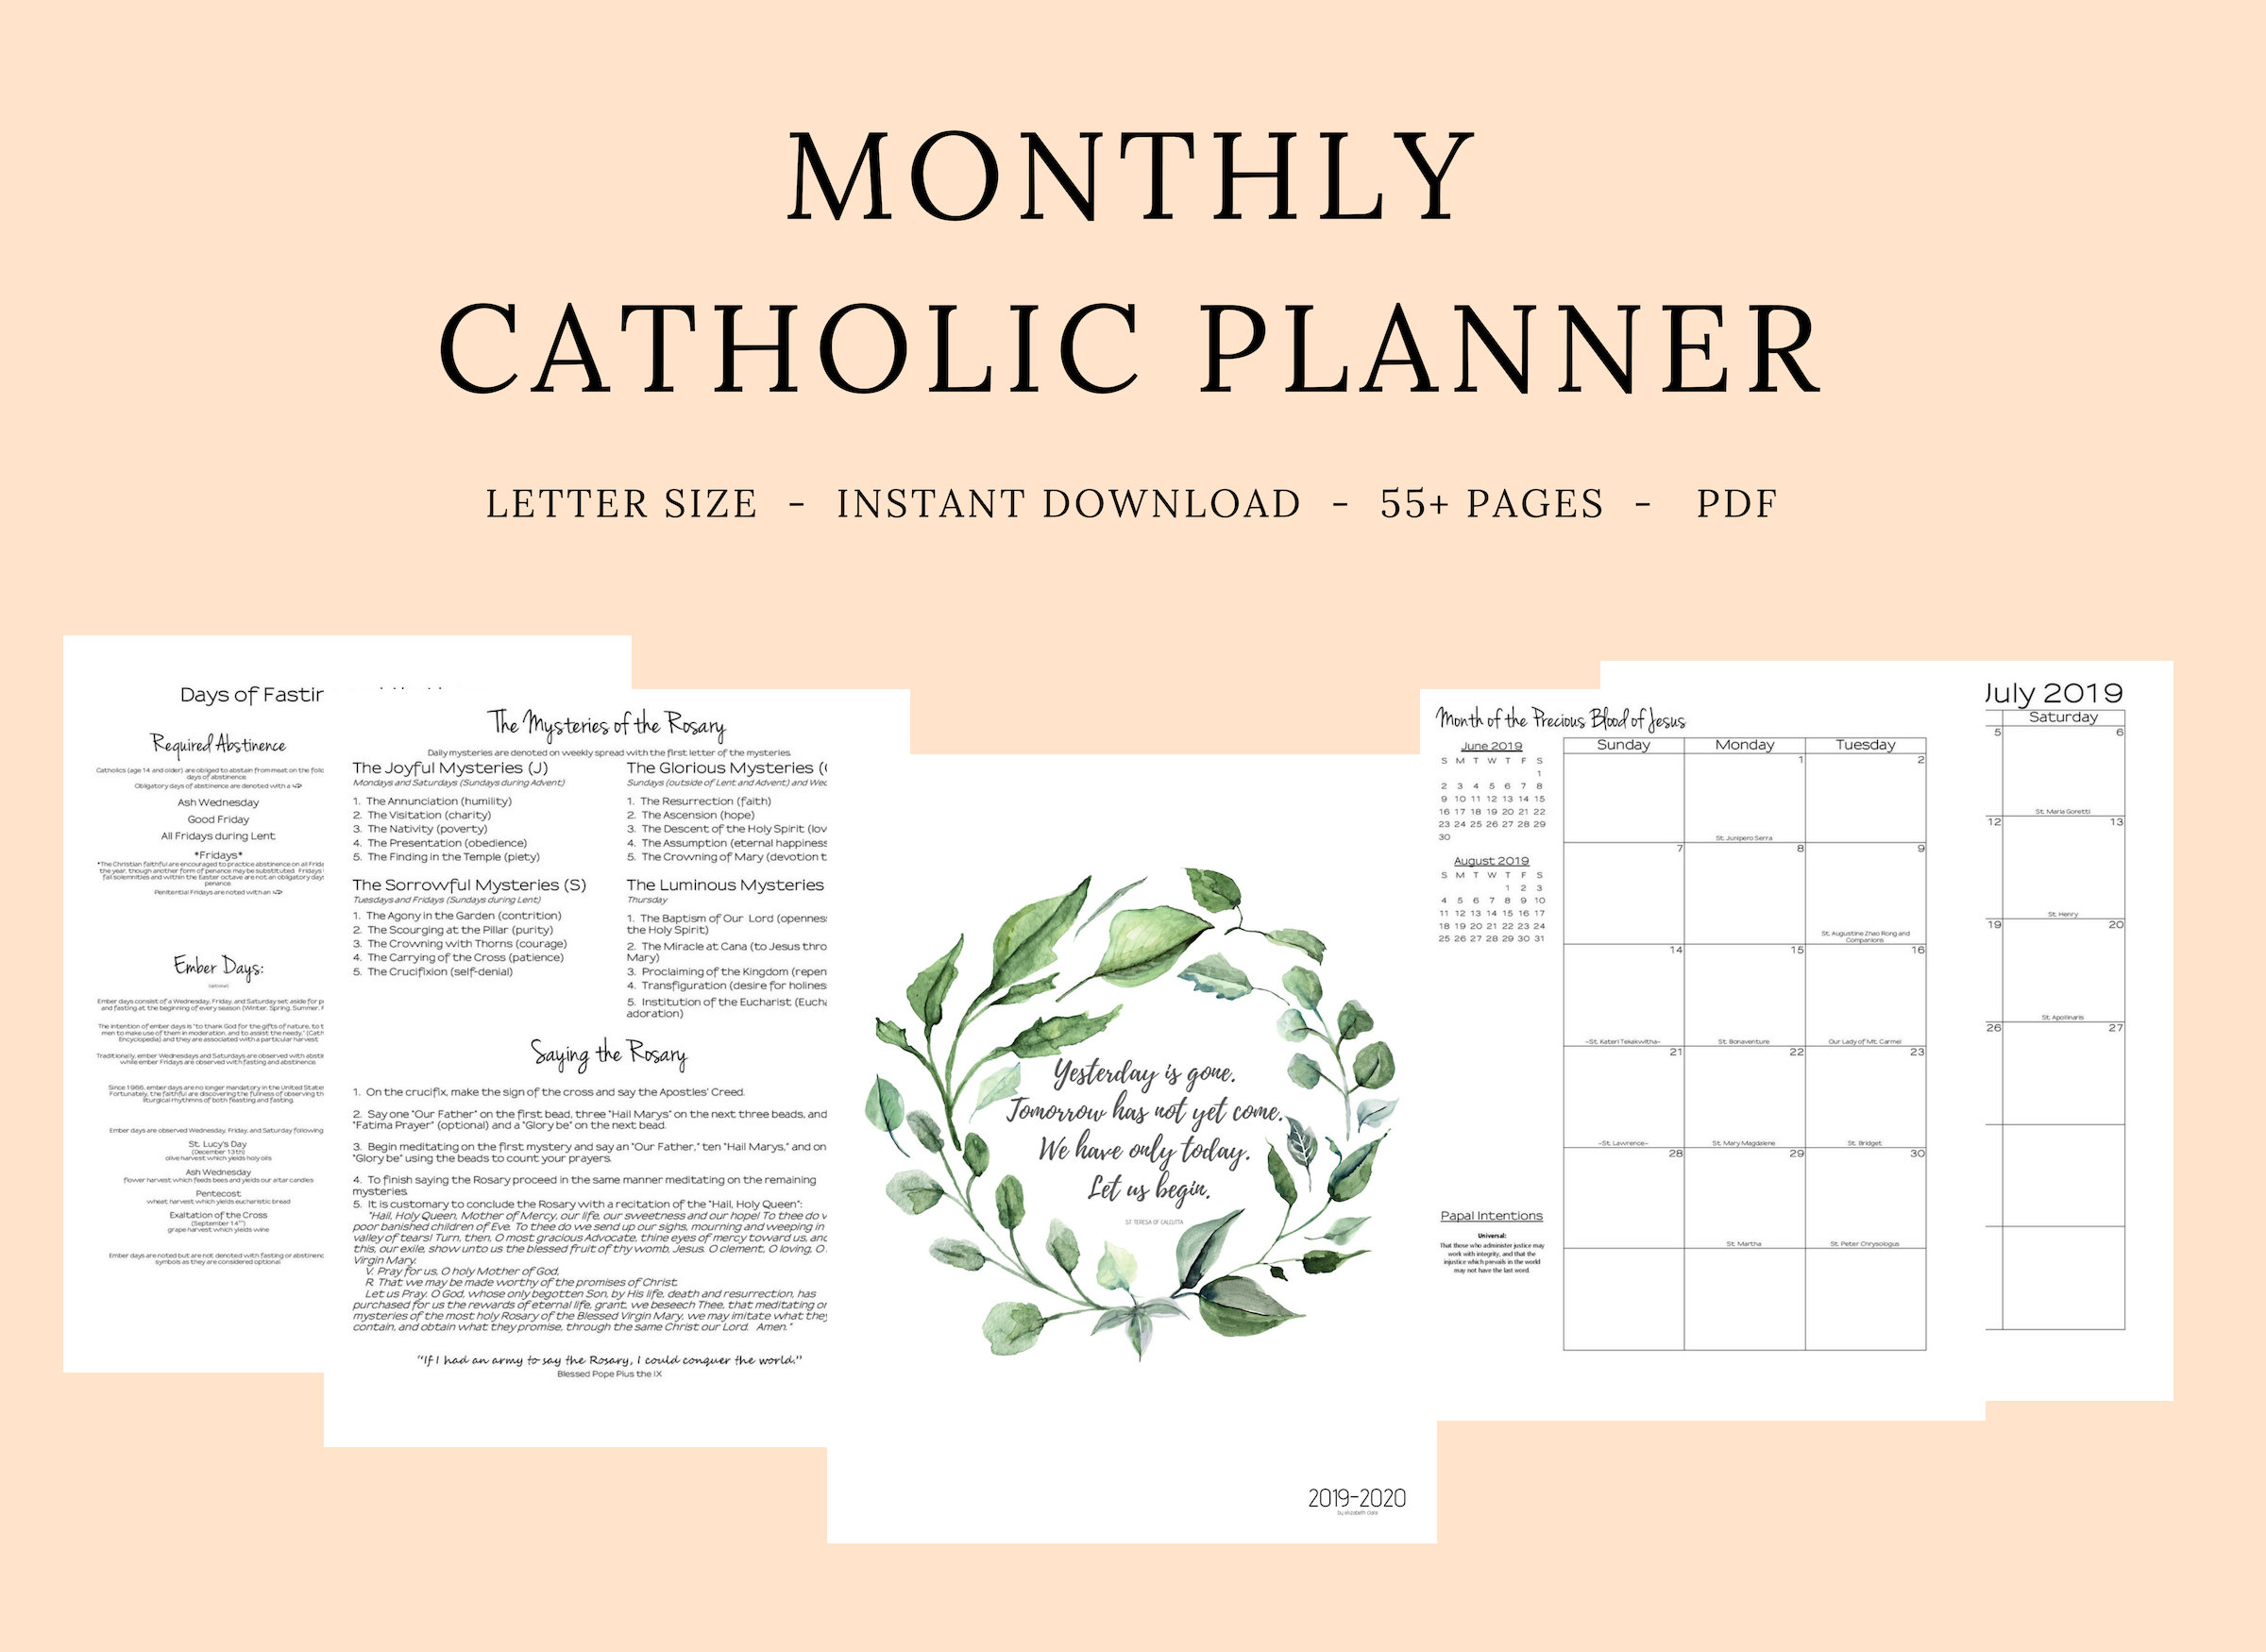 2019 2020 Catholic Planner Monthly Printable: Monthly | Etsy with Free Catholic Liturgical Calendar For 2020